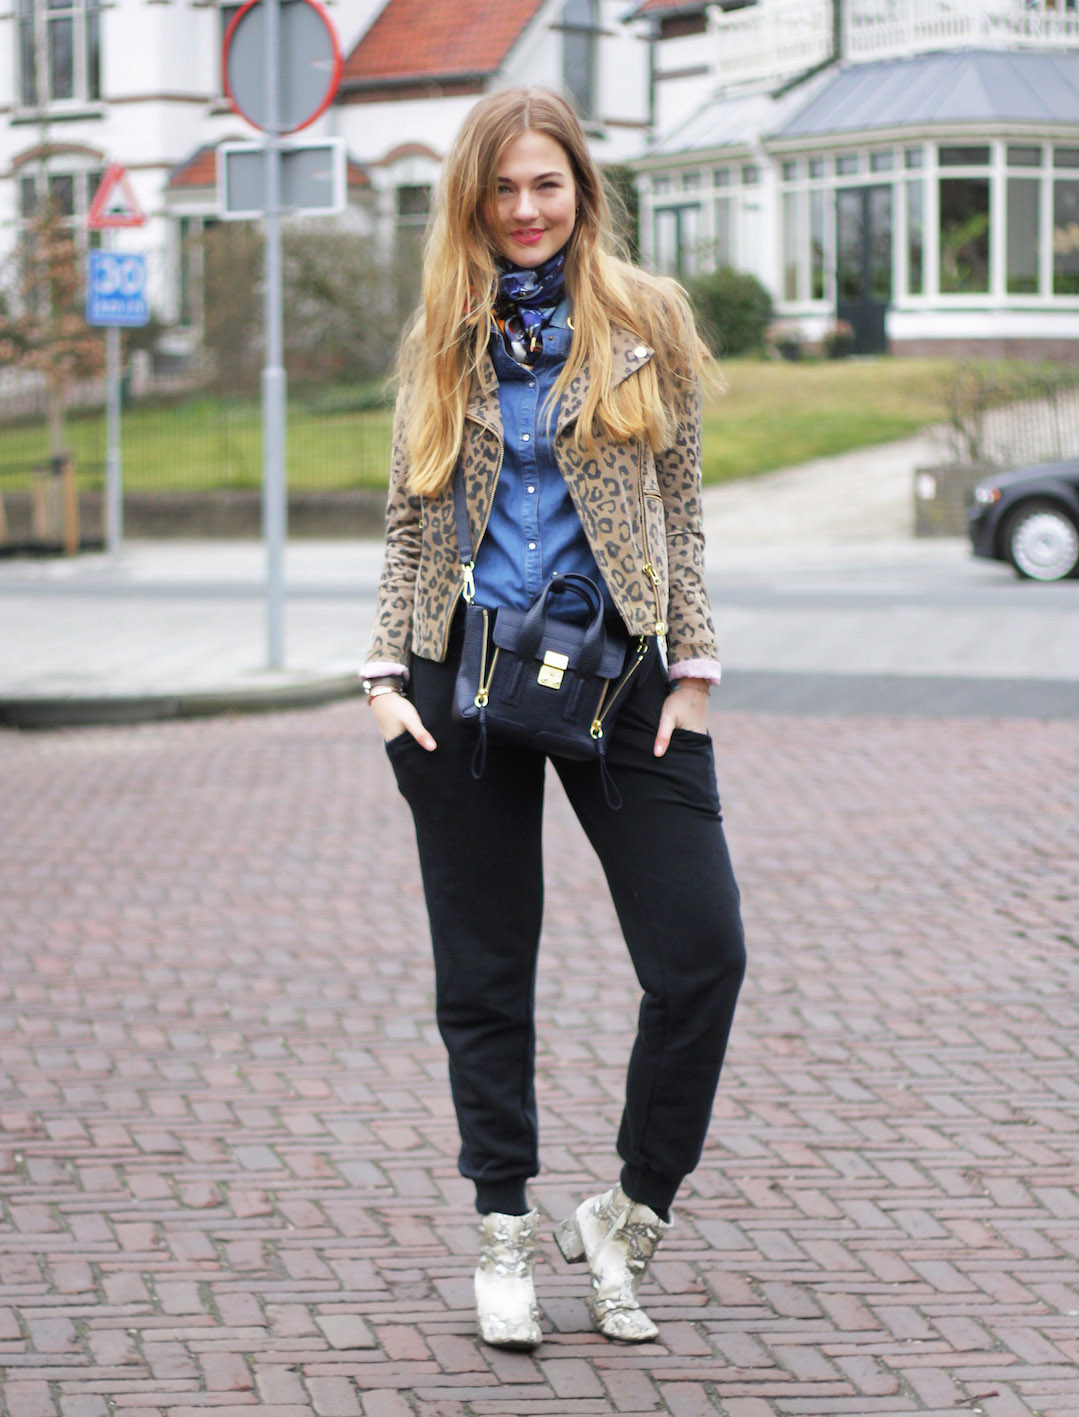 floortjeloves, sweatpants, puma, zara, demontz, zara, leopard, leather jacket, denim shirt